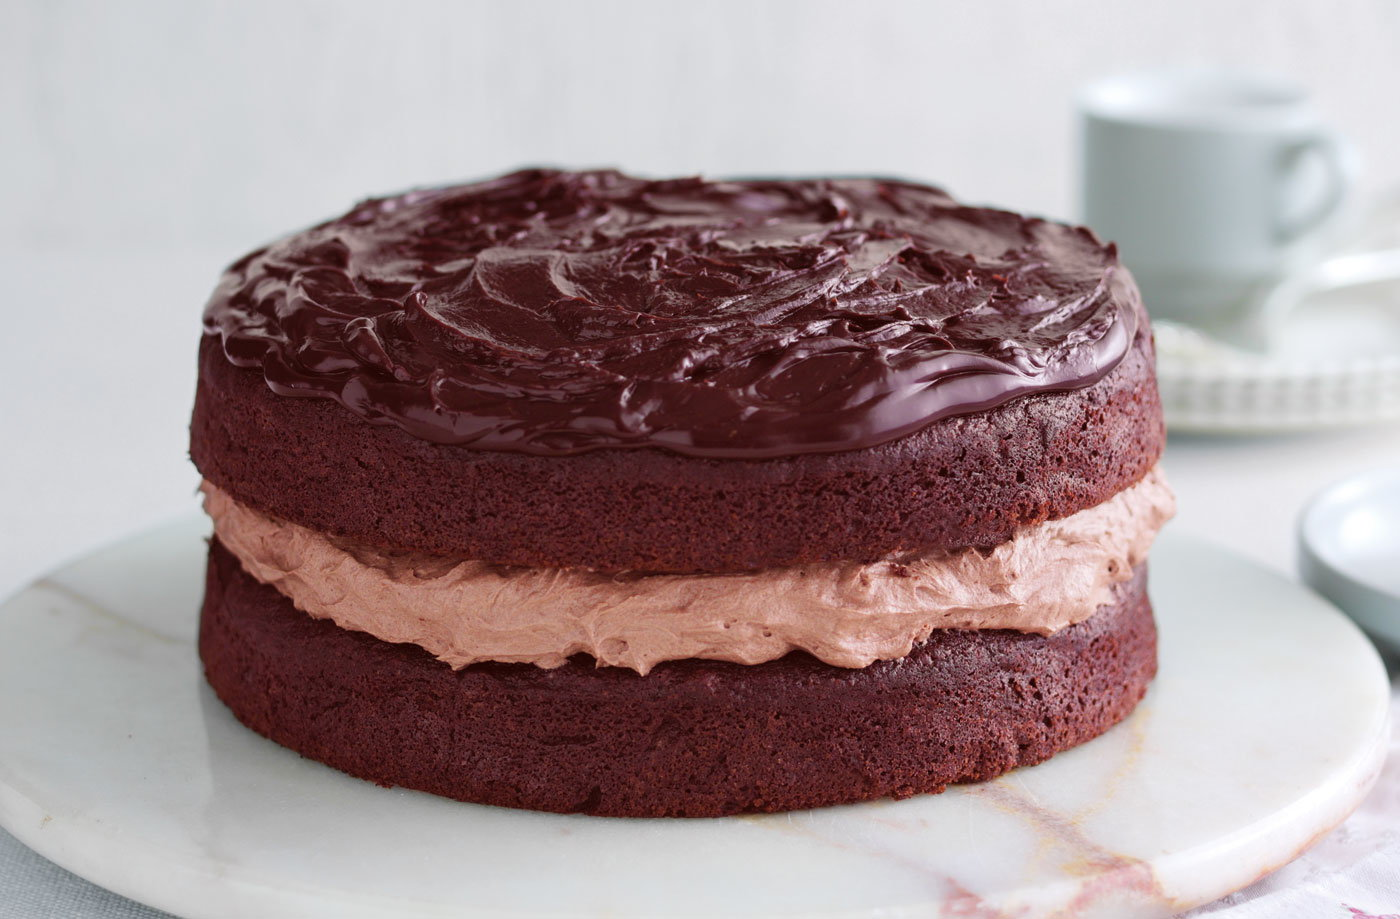 Gluten Free Chocolate Sponge Cake Recipes Uk: Chocolate And Beetroot Cake